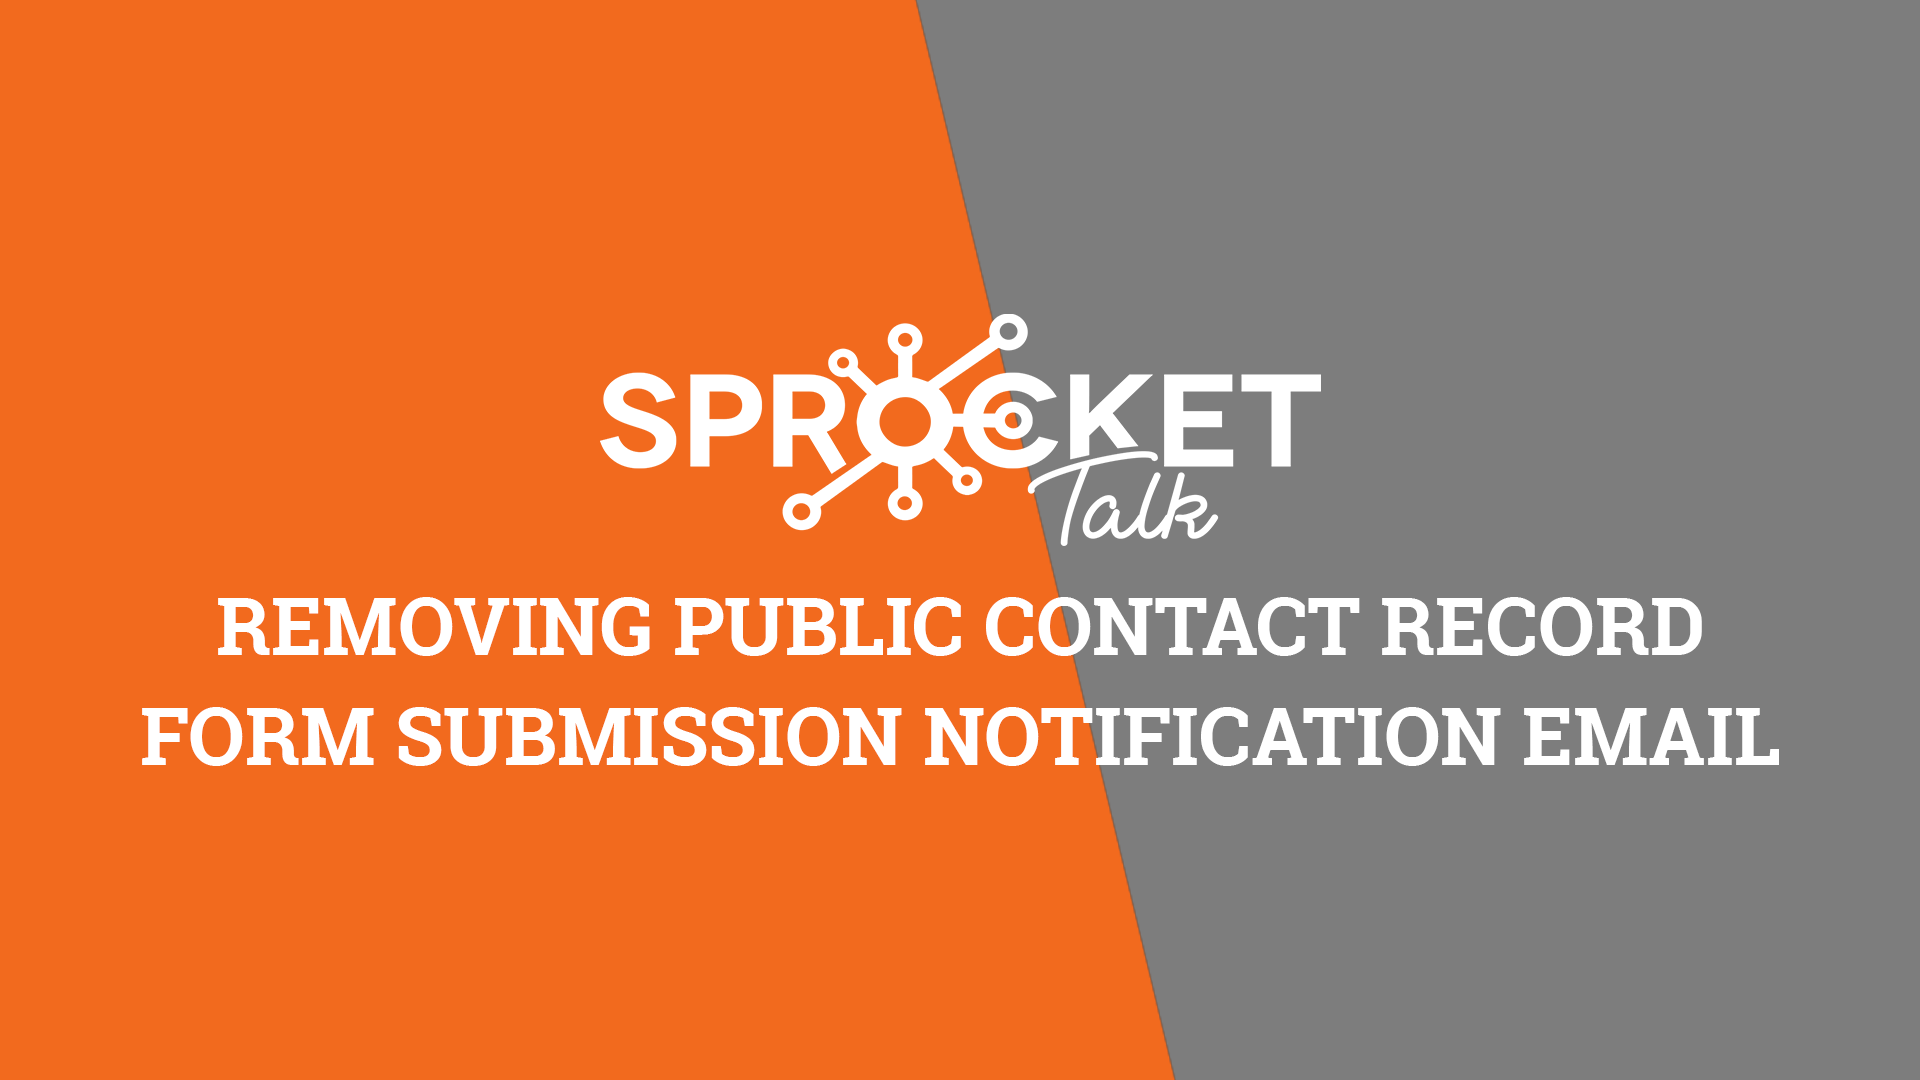 Removing Public Contact RecordForm Submission Notification Emails